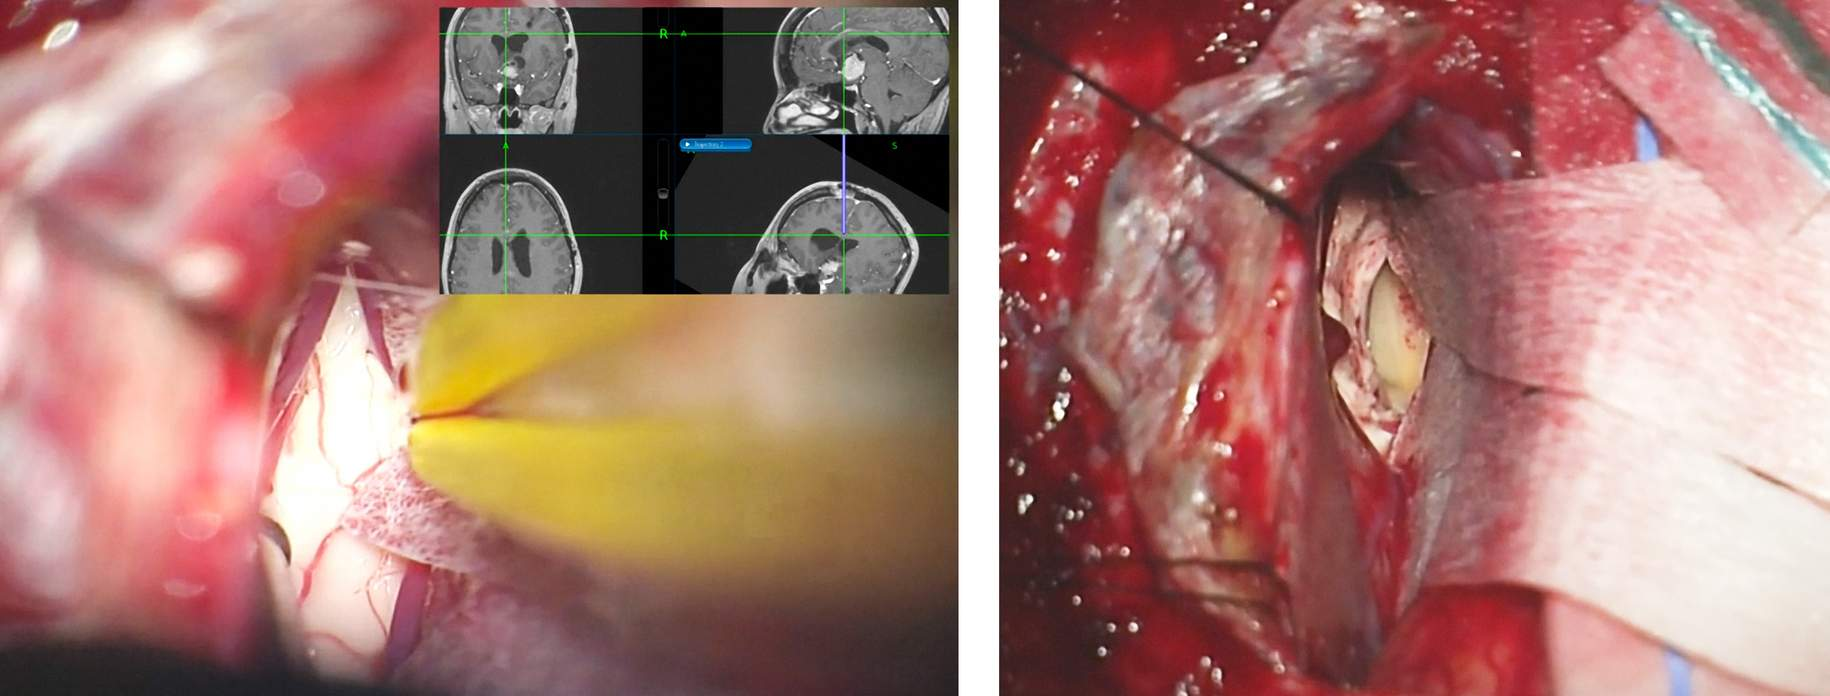 Figure 9: Neuronavigation is critical to orient the surgeon with respect to the desired trajectory to reach the foramen through a corpus callosotomy of appropriate location and minimal length (left image). A 2cm callosotomy is situated just to the right of the midline, exposing the right lateral ventricle (right image). Release of cerebrospinal fluid at this juncture further relaxes the frontal lobe. Note the sutures in the superior falx that mobilize the superior sagittal sinus.